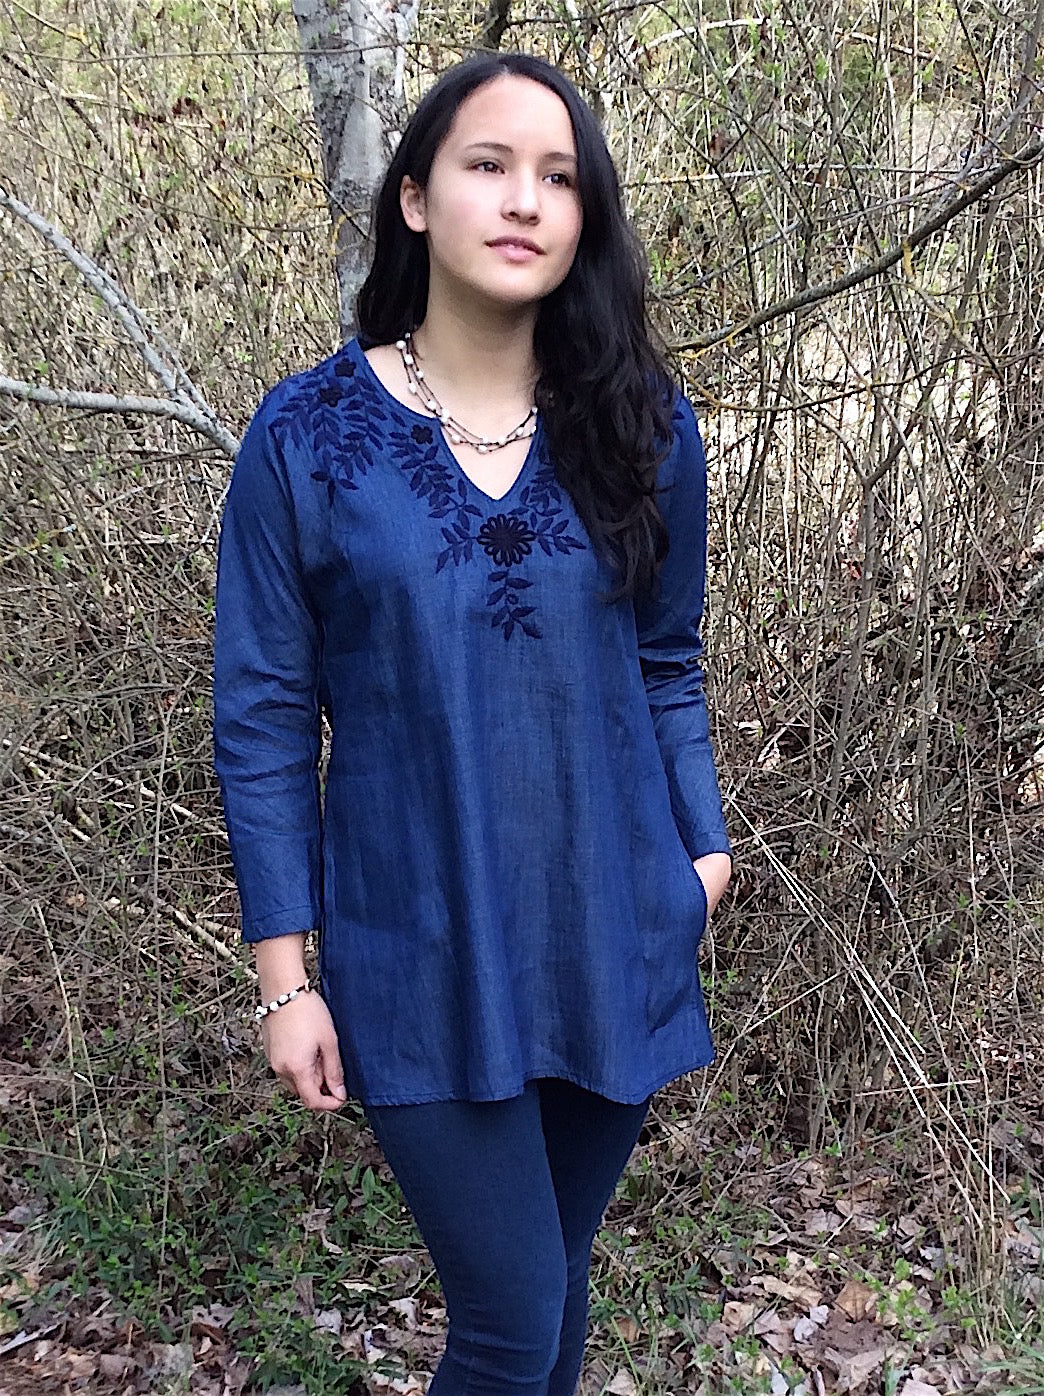 Lupe tunic - denim floral